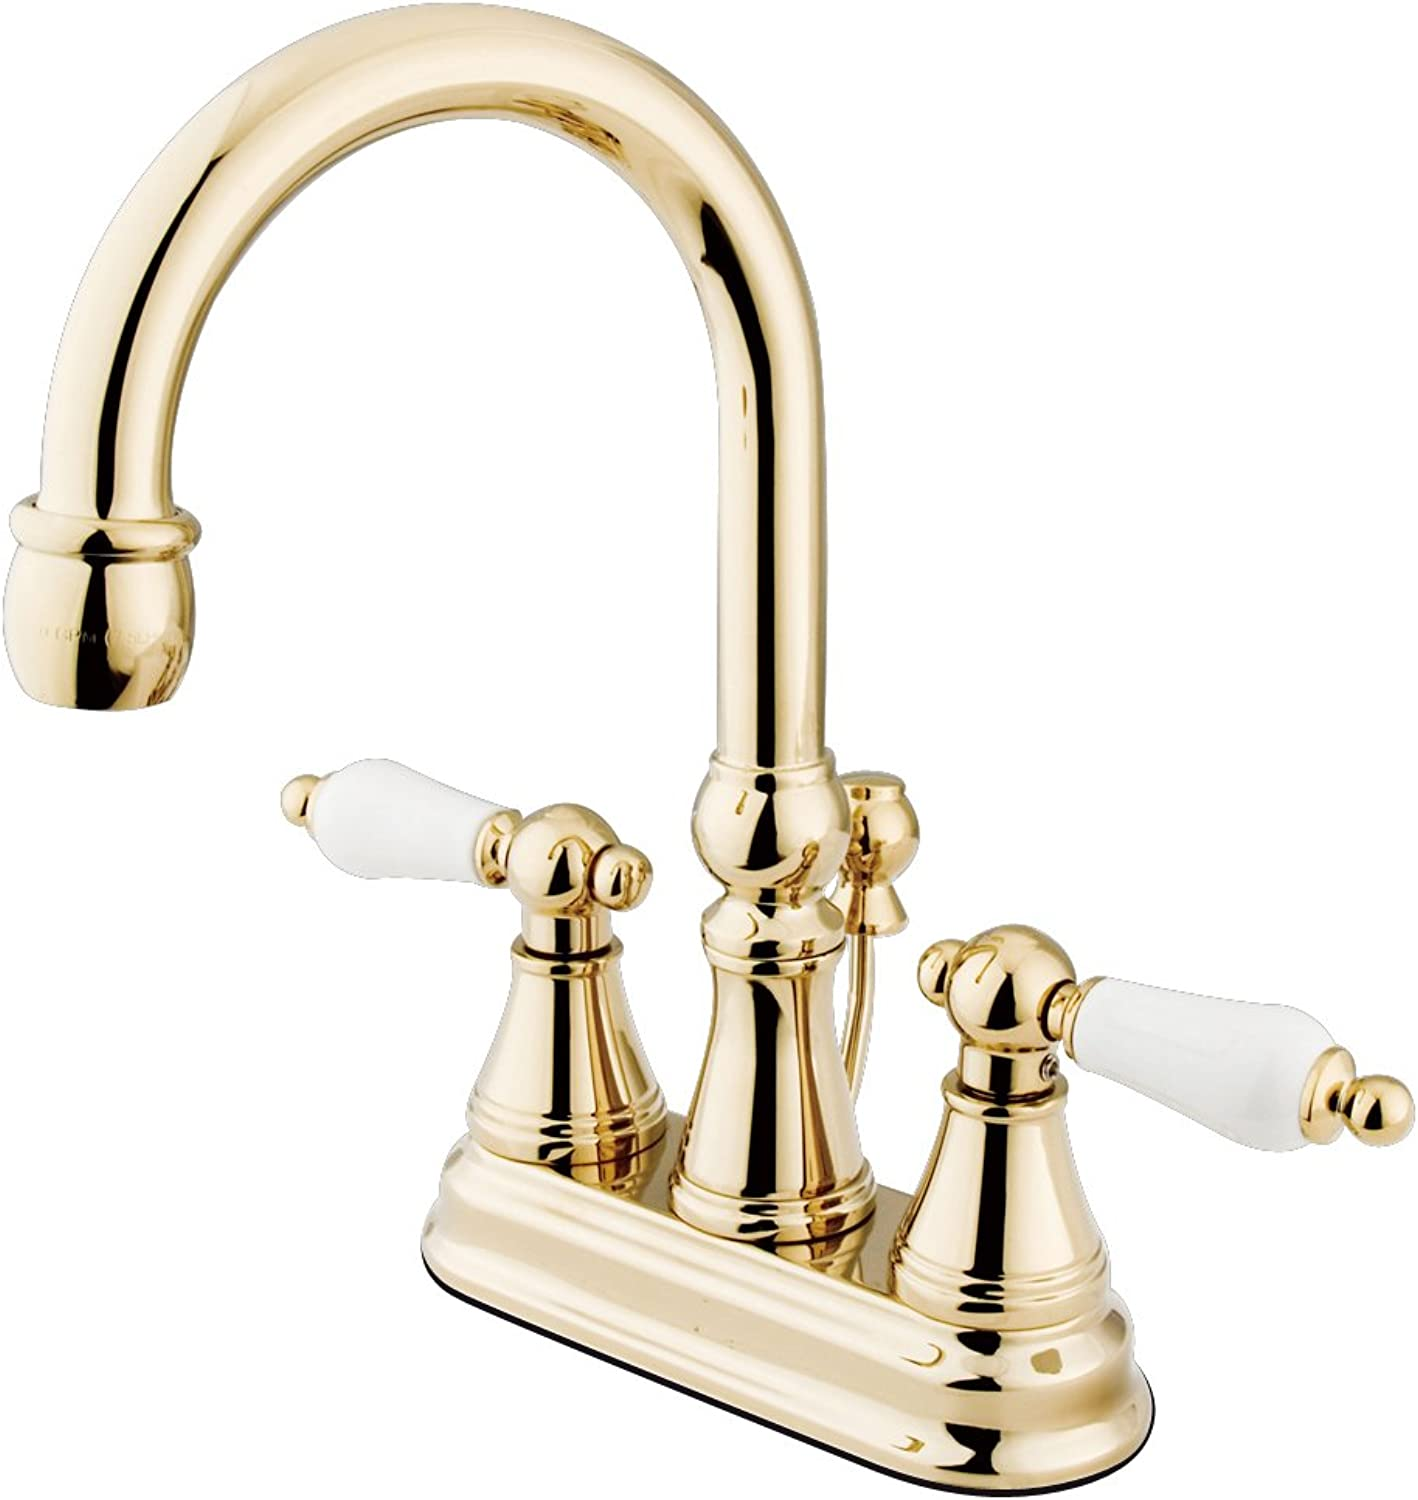 Nuvo Elements of Design ES2612PL Madison 2-Handle 4  Centerset Lavatory Faucet with Brass Pop-up, 4-7 8 , Polished Brass